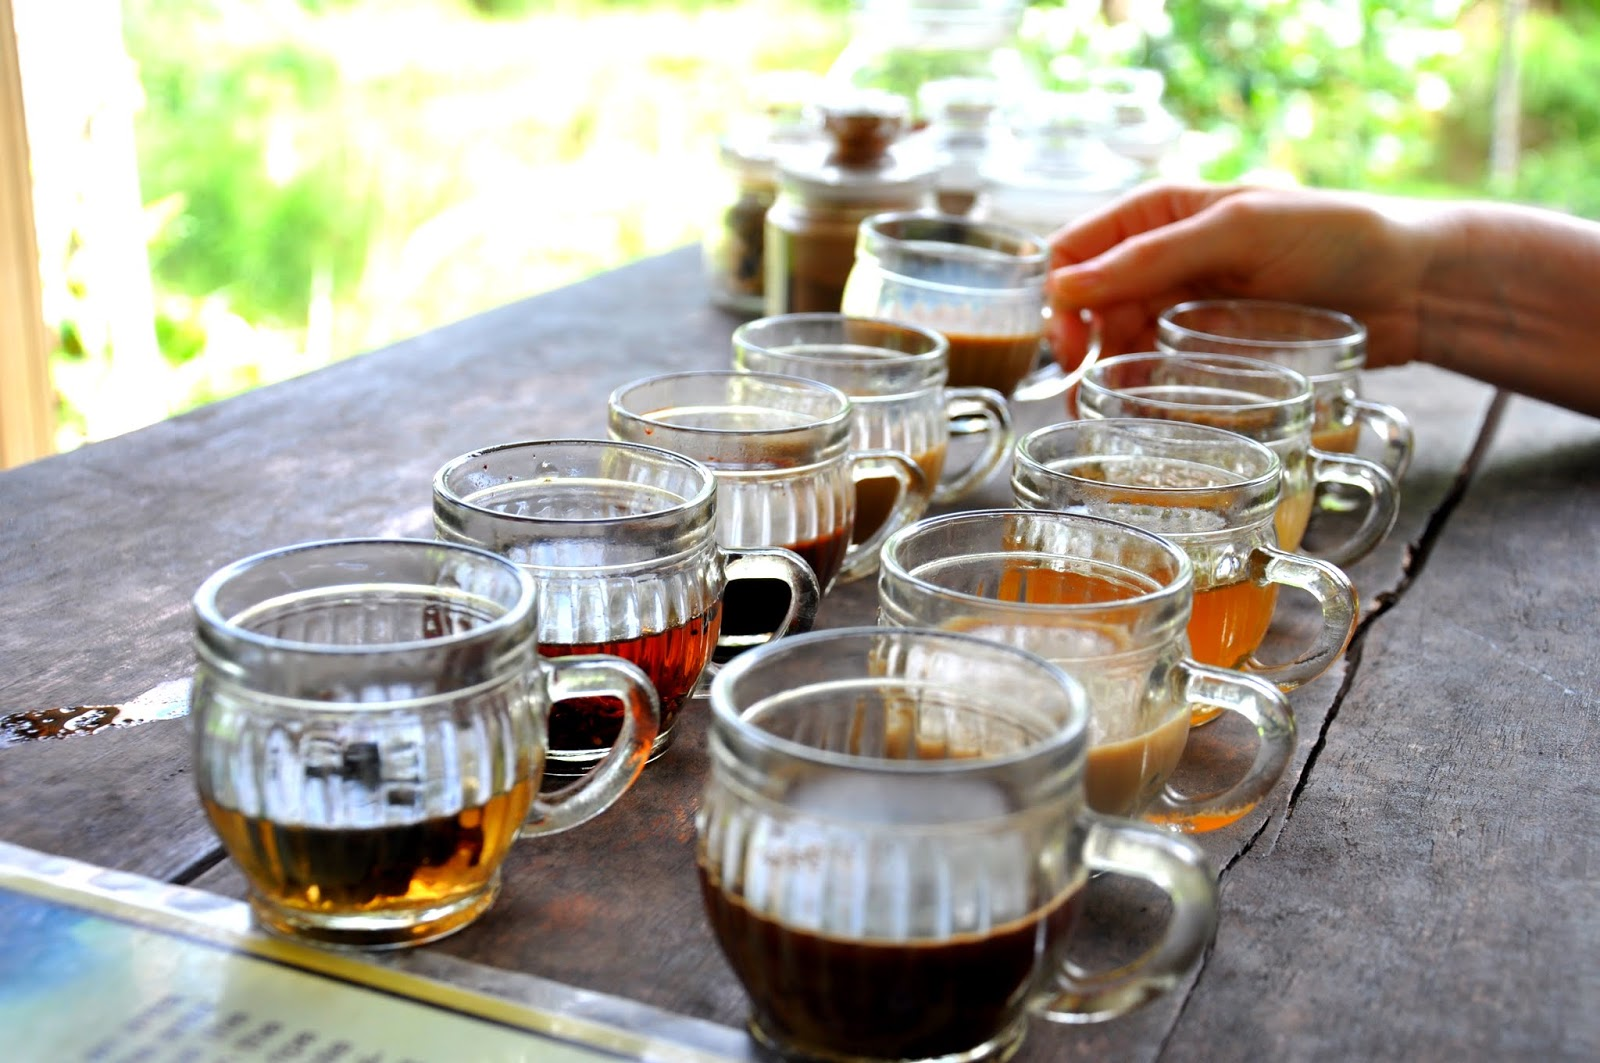 Bali, Indonesia  A sampling of Sumatran and Javanese beans, as well a brew made from beans pooped out by Civets, the local wild jungle cat.